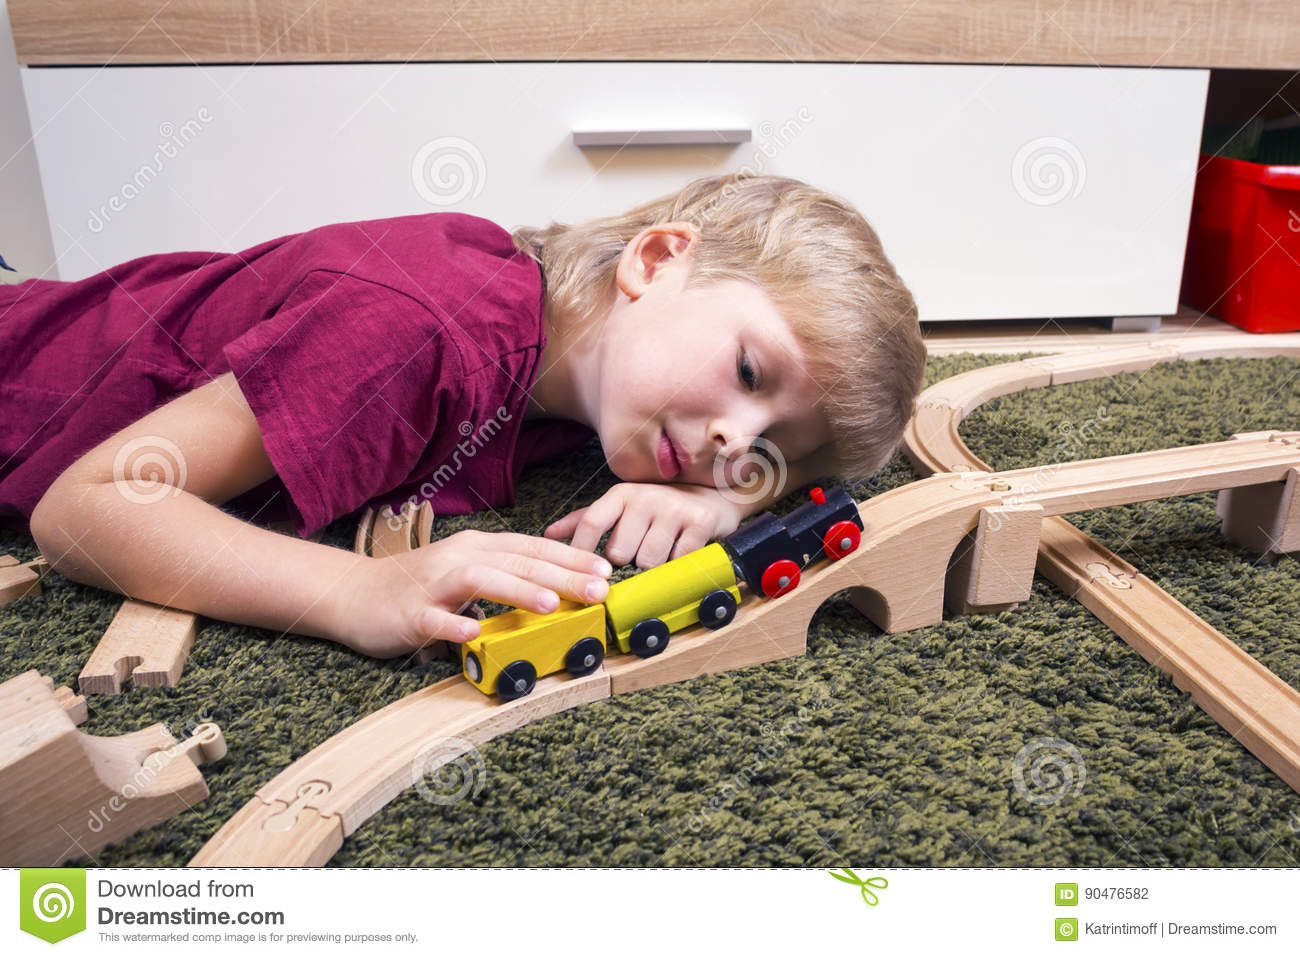 Child boy play with wooden train, build toy railroad at home or